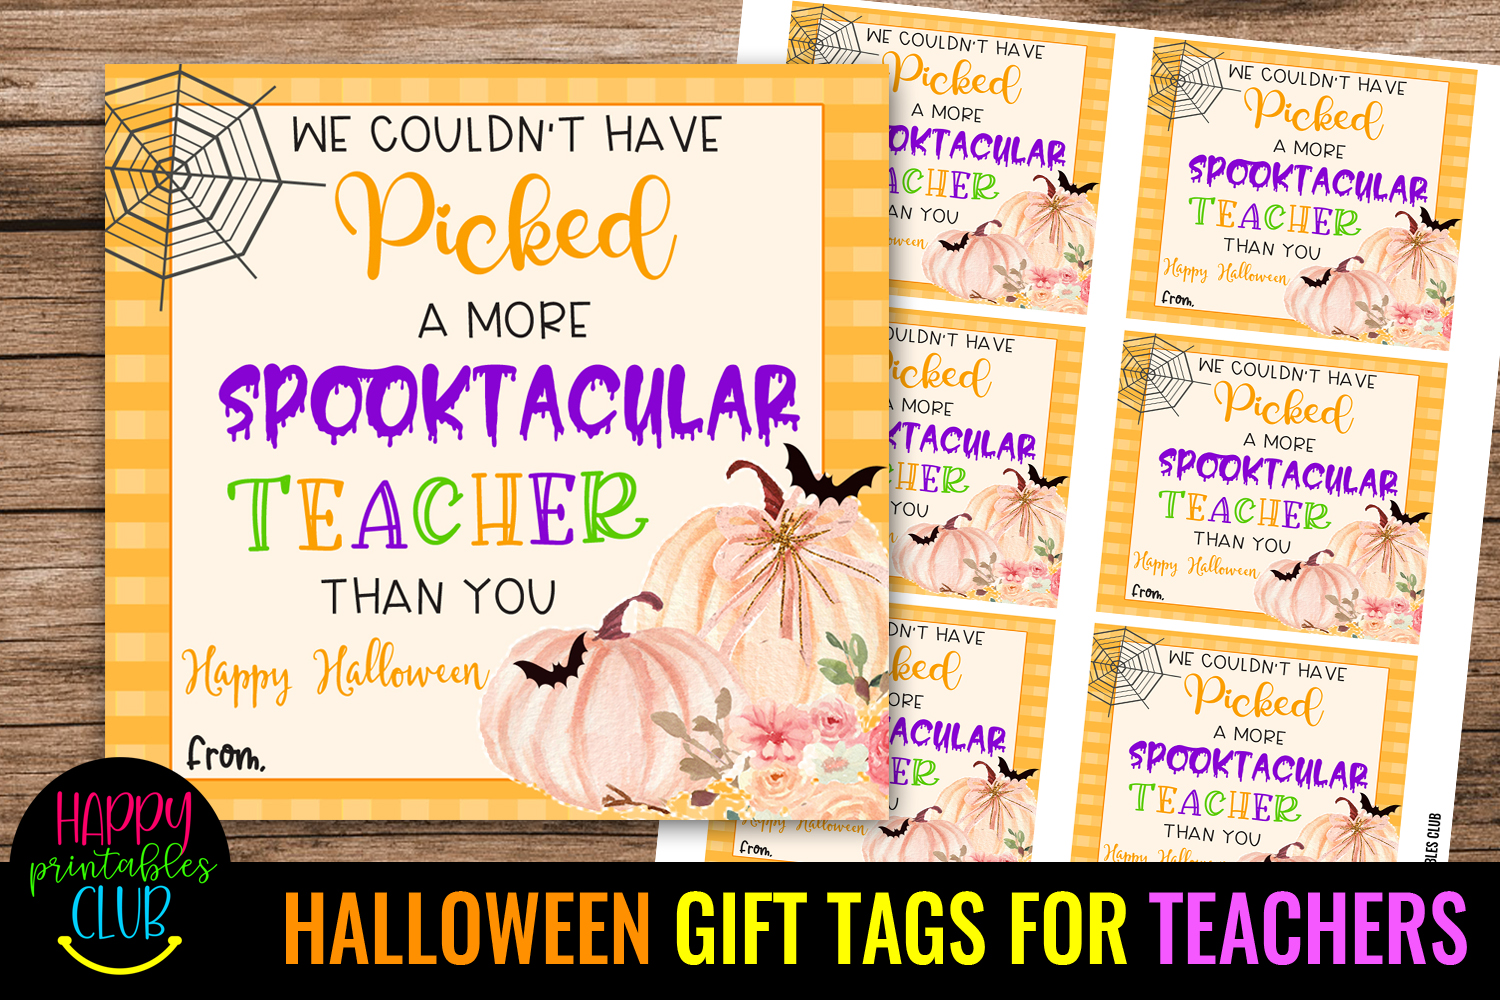 Thank You For Being Spooktacular -Halloween Gift Tag Teacher - HALLOWEEN GIFT TAGS FOR TEACHERS school halloween gift tags 1 -